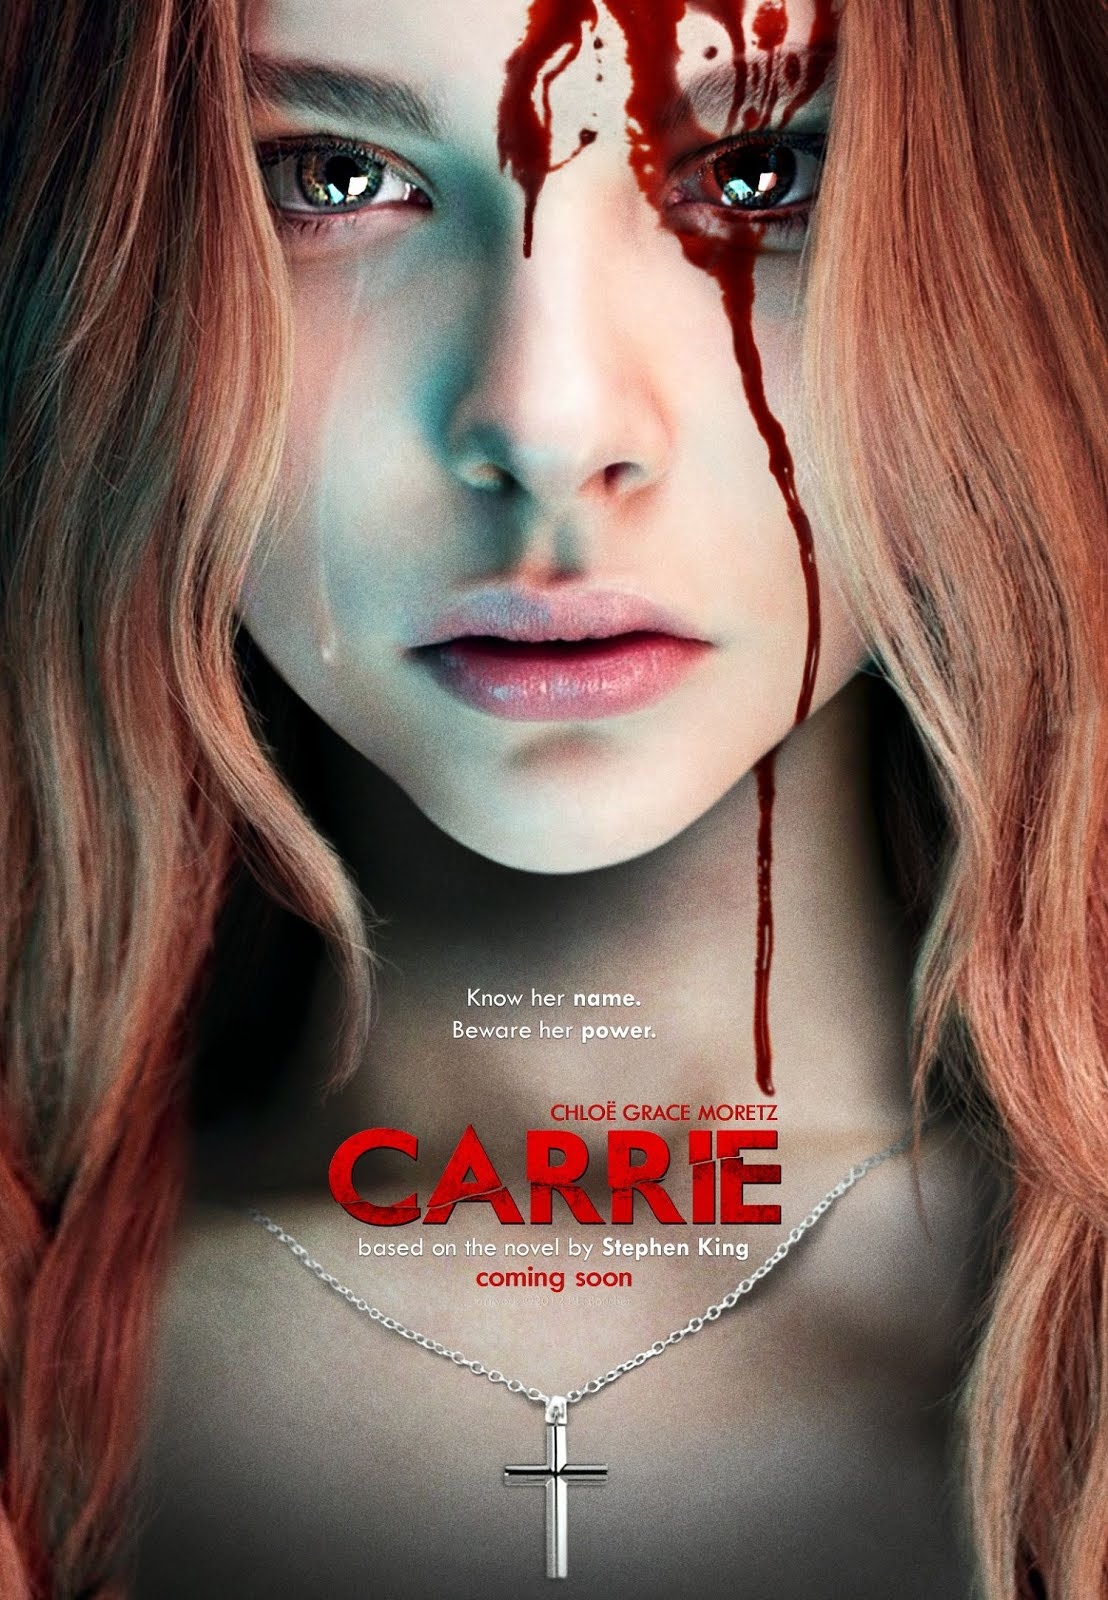 'Carrie' is back in cinemas today. But horror is still being let down by films that hate women